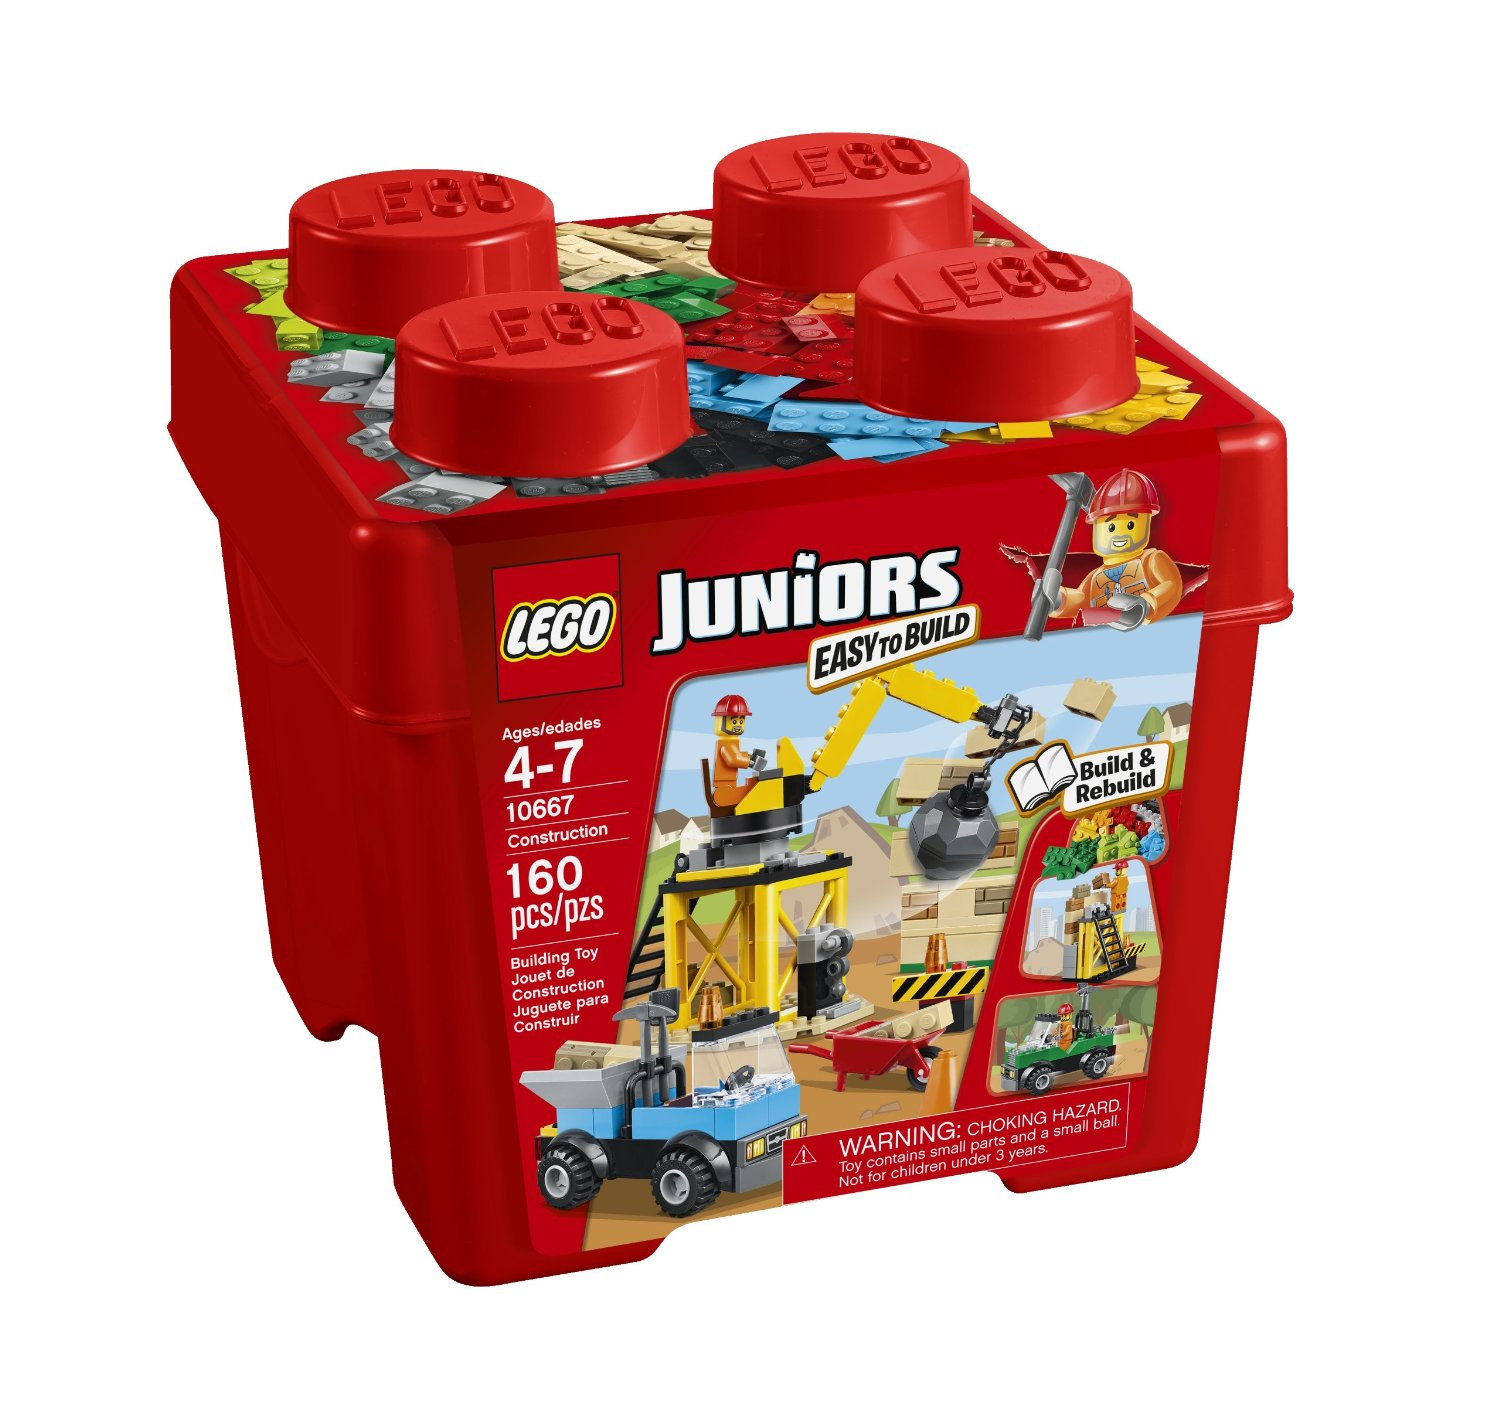 Toys For 15 00 For Boys : Lego juniors construction piece tub for free